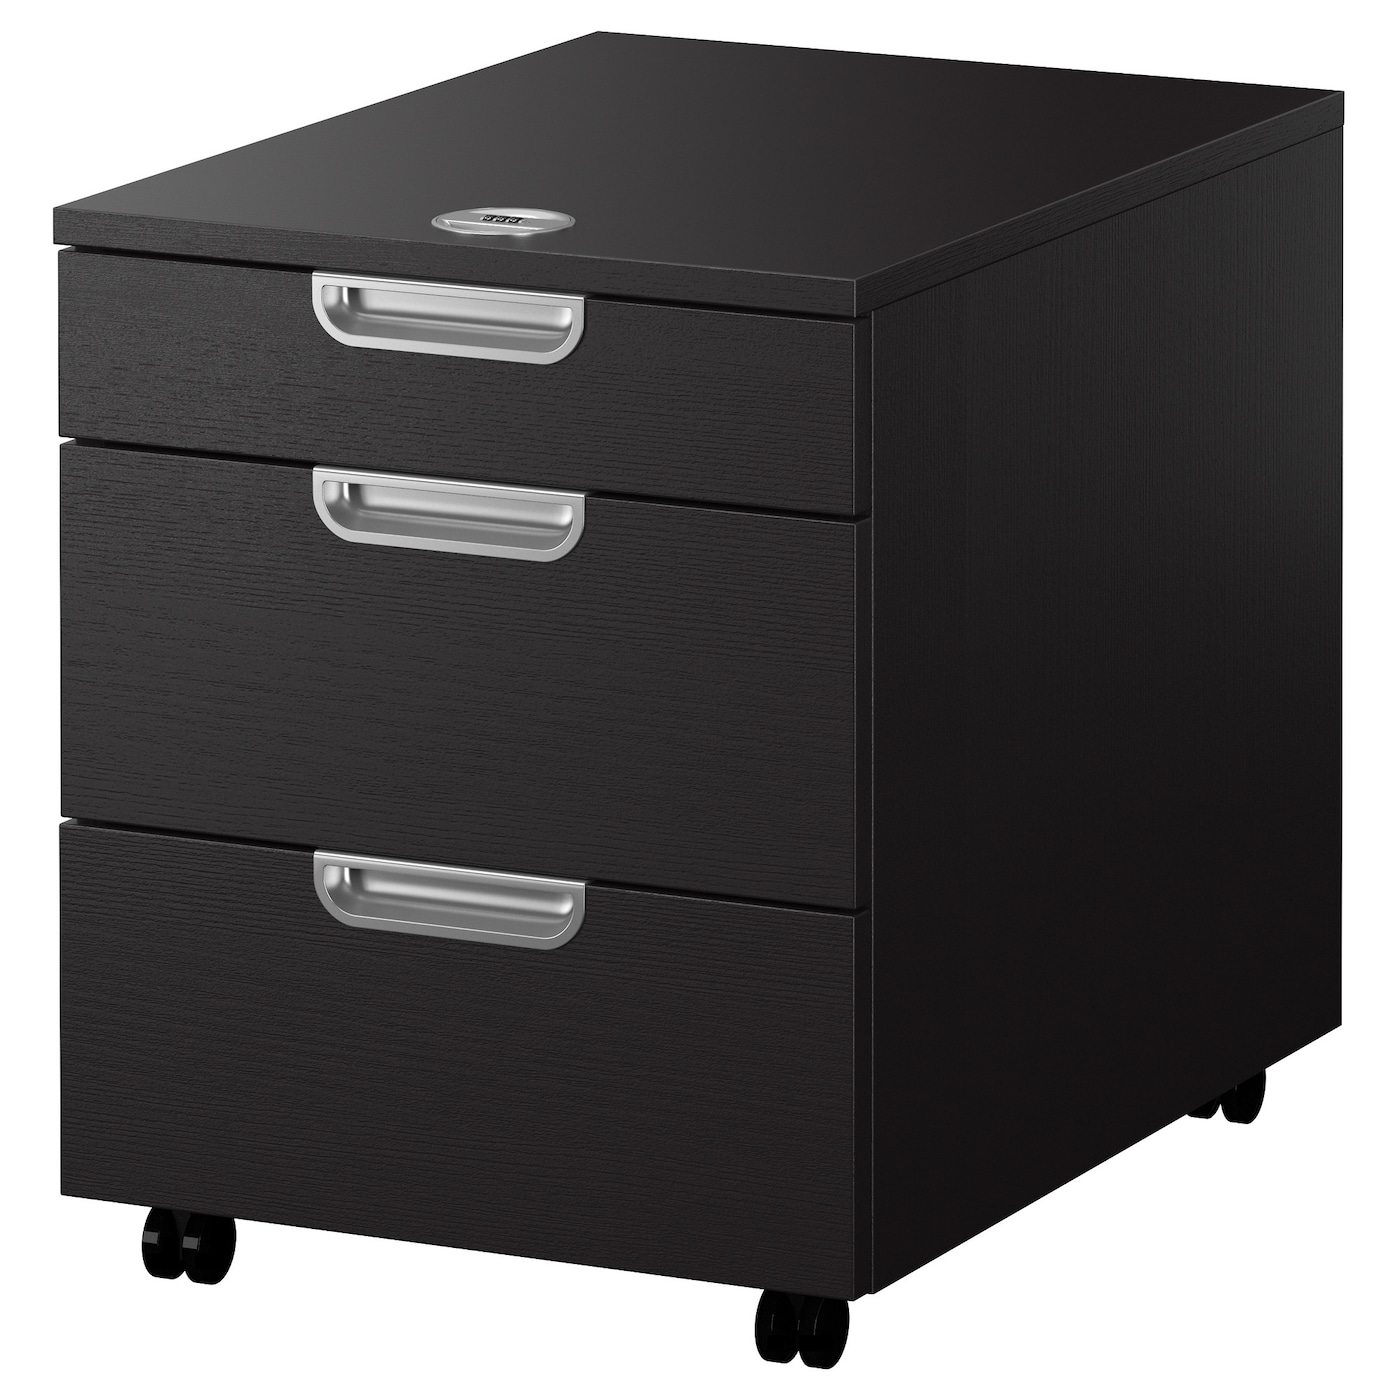 IKEA GALANT drawer unit on castors Integrated damper closes the drawer silently and gently.